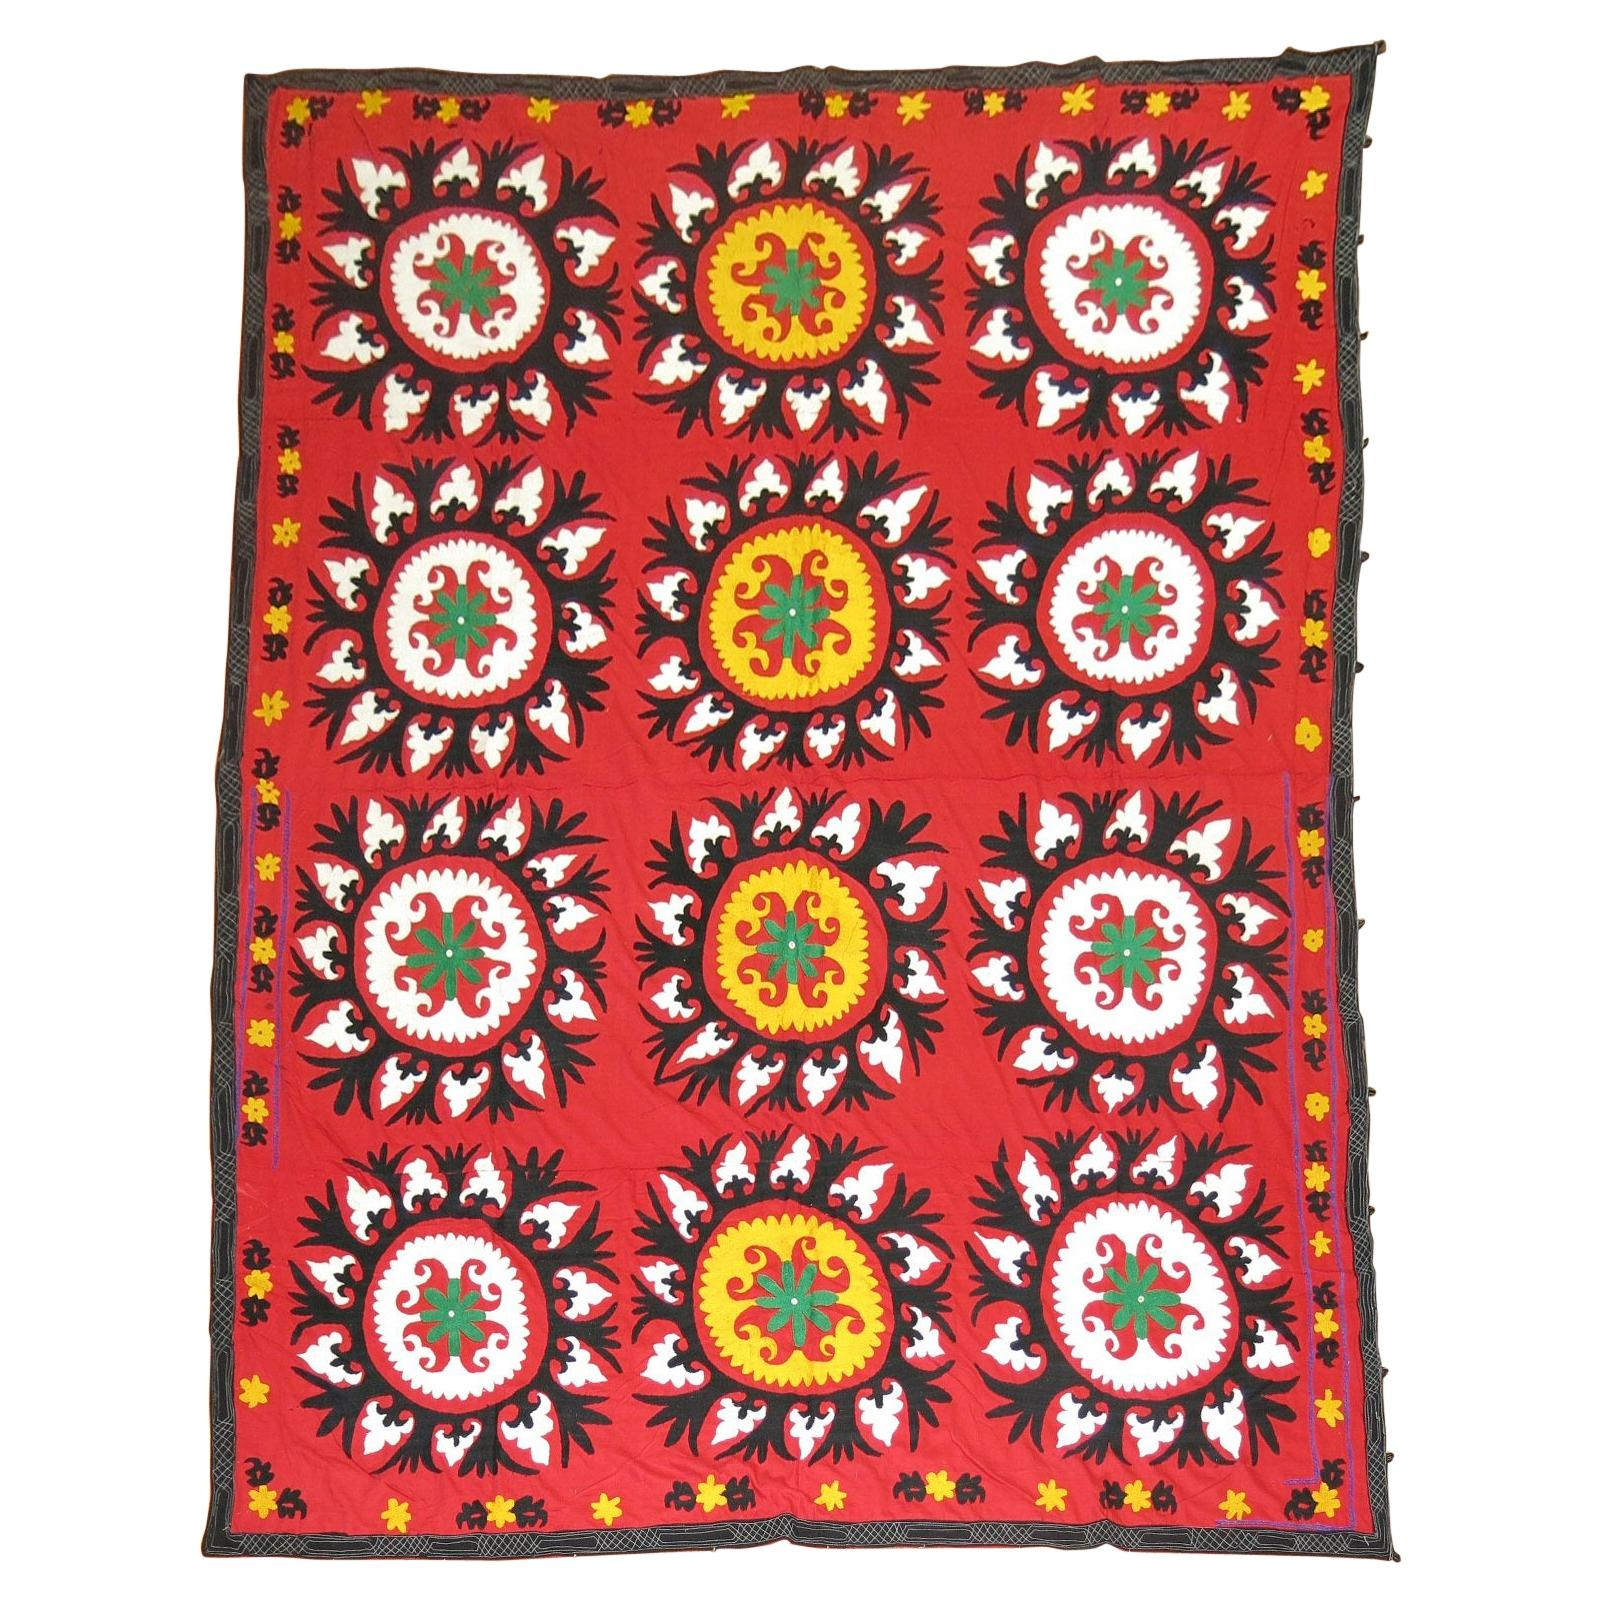 Red Suzanni Turkish Embroidery Textile